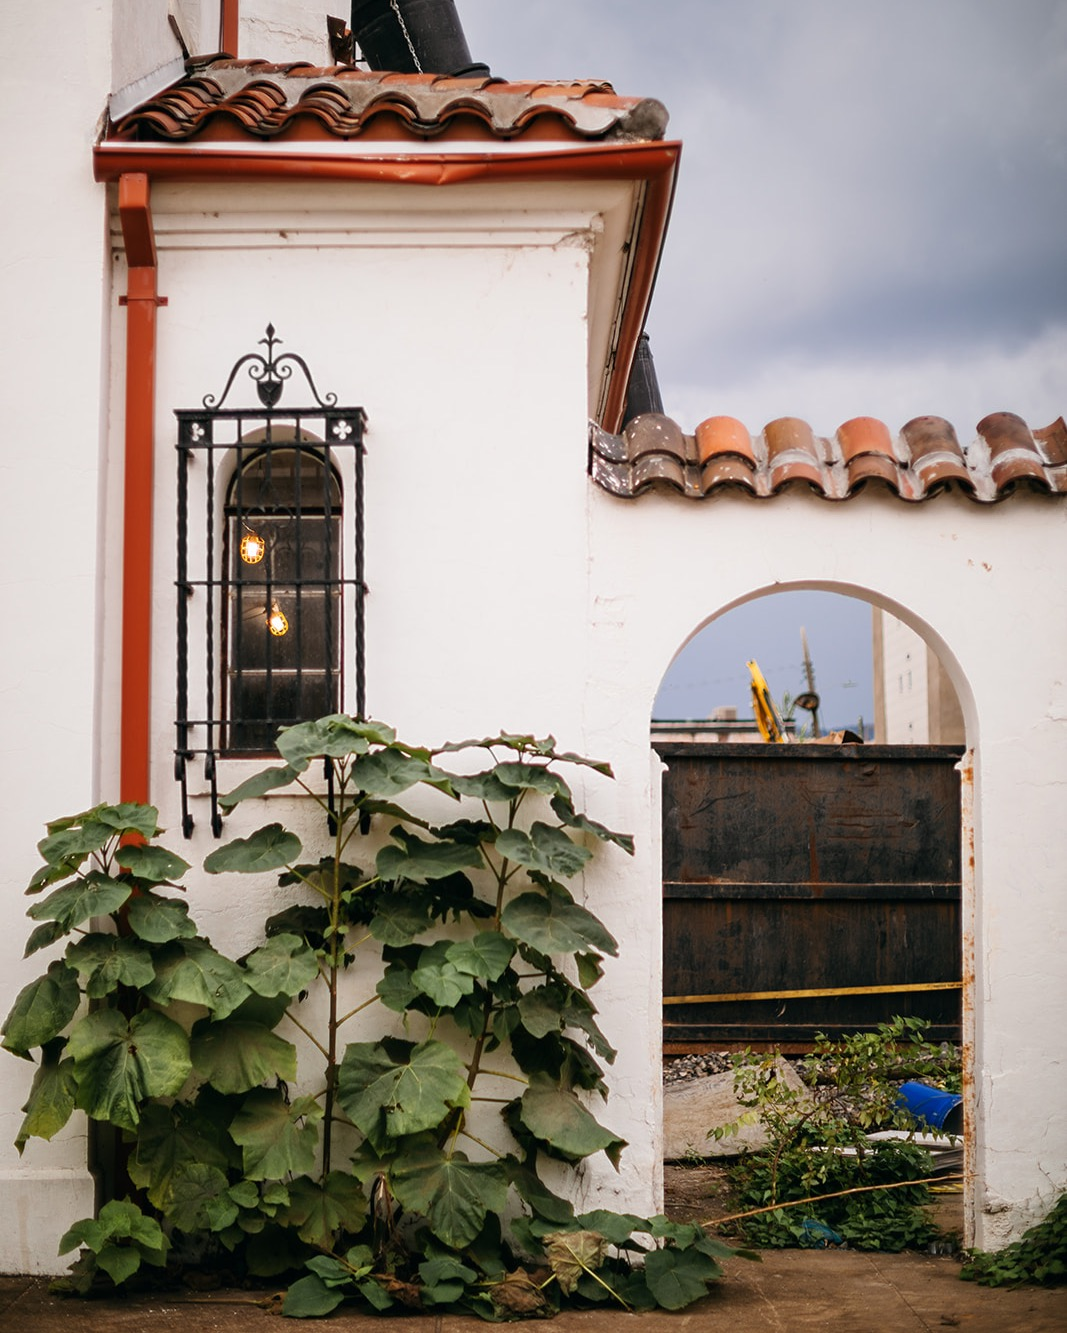 whitewashed exterior of Common House Chattanooga with wrought iron window bars, red gutter downspouts and Spanish tile roof